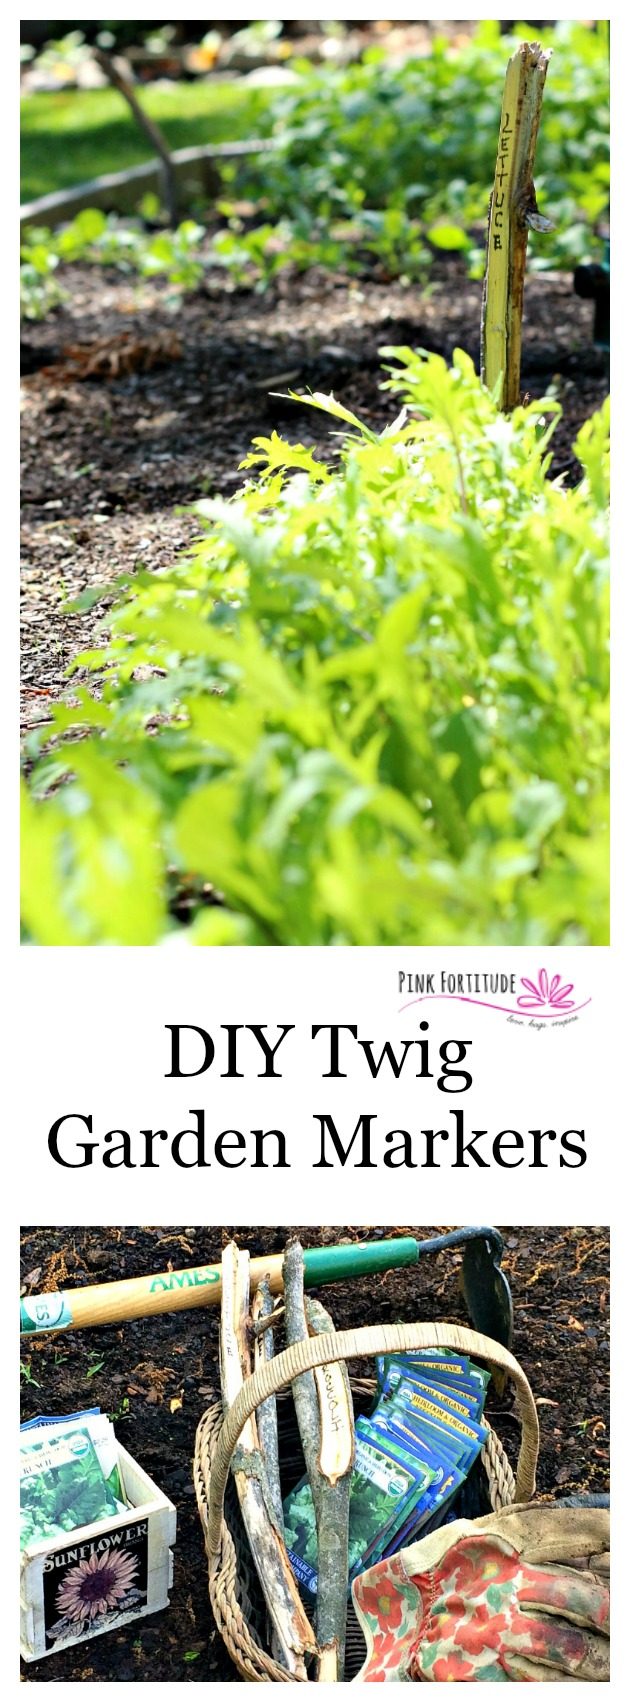 I saw these twig garden markers in a store and knew they would be super easy to create for our garden. Little did I know how easy! You gotta check out this DIY!